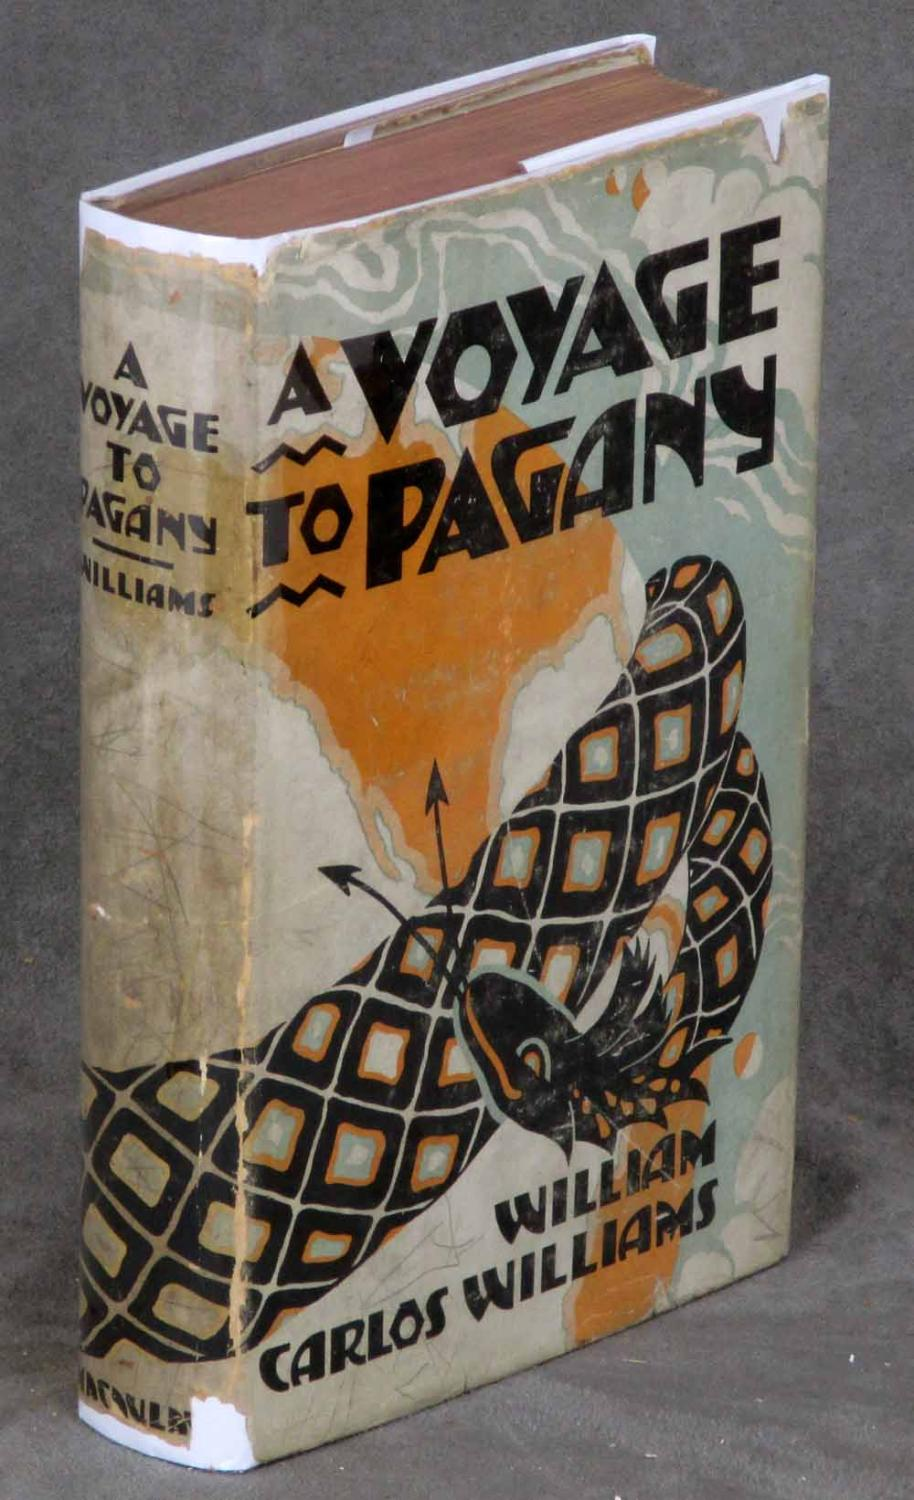 A Voyage to Pagany Williams, William Carlos